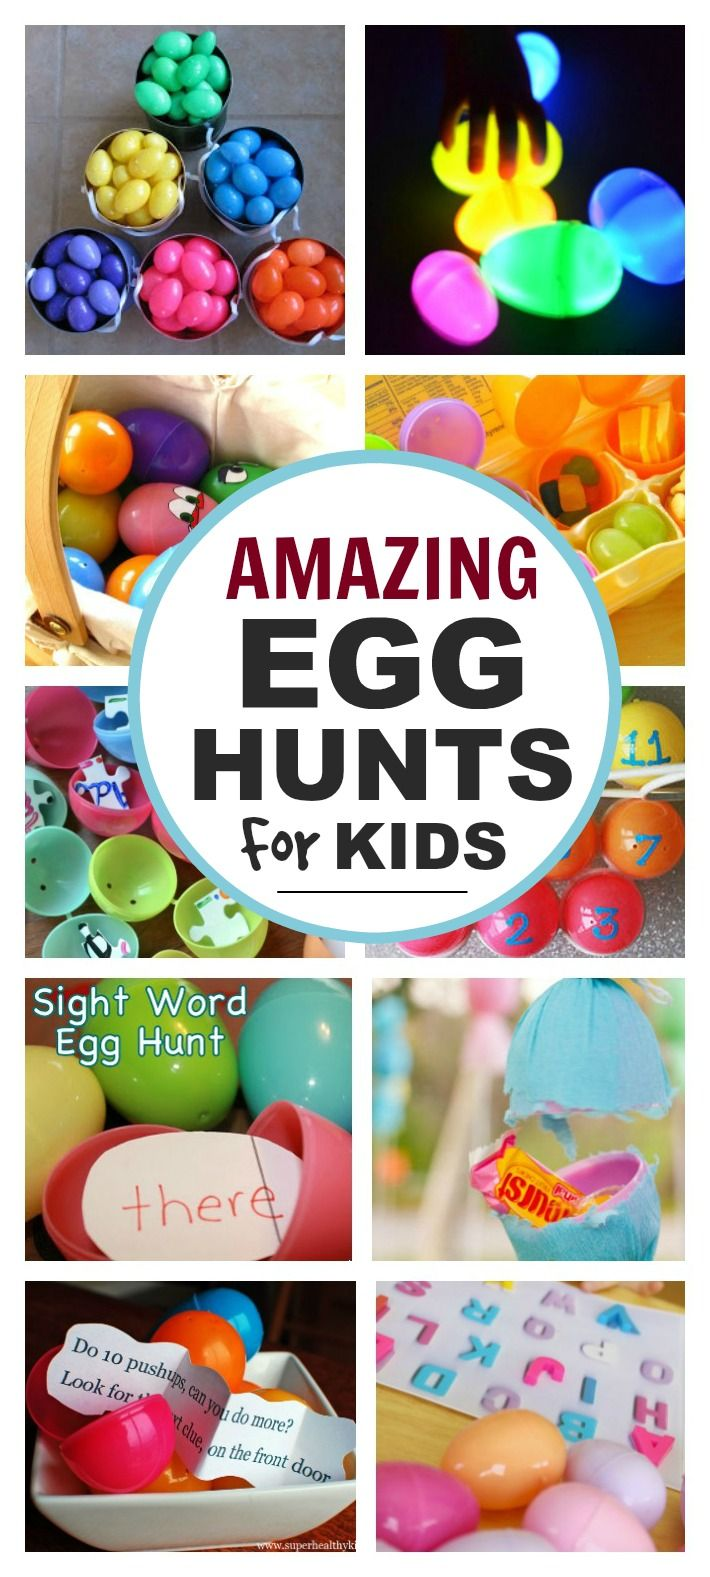 Over 20 Easter Egg Hunt Ideas For Kids Wow These Are Awesome